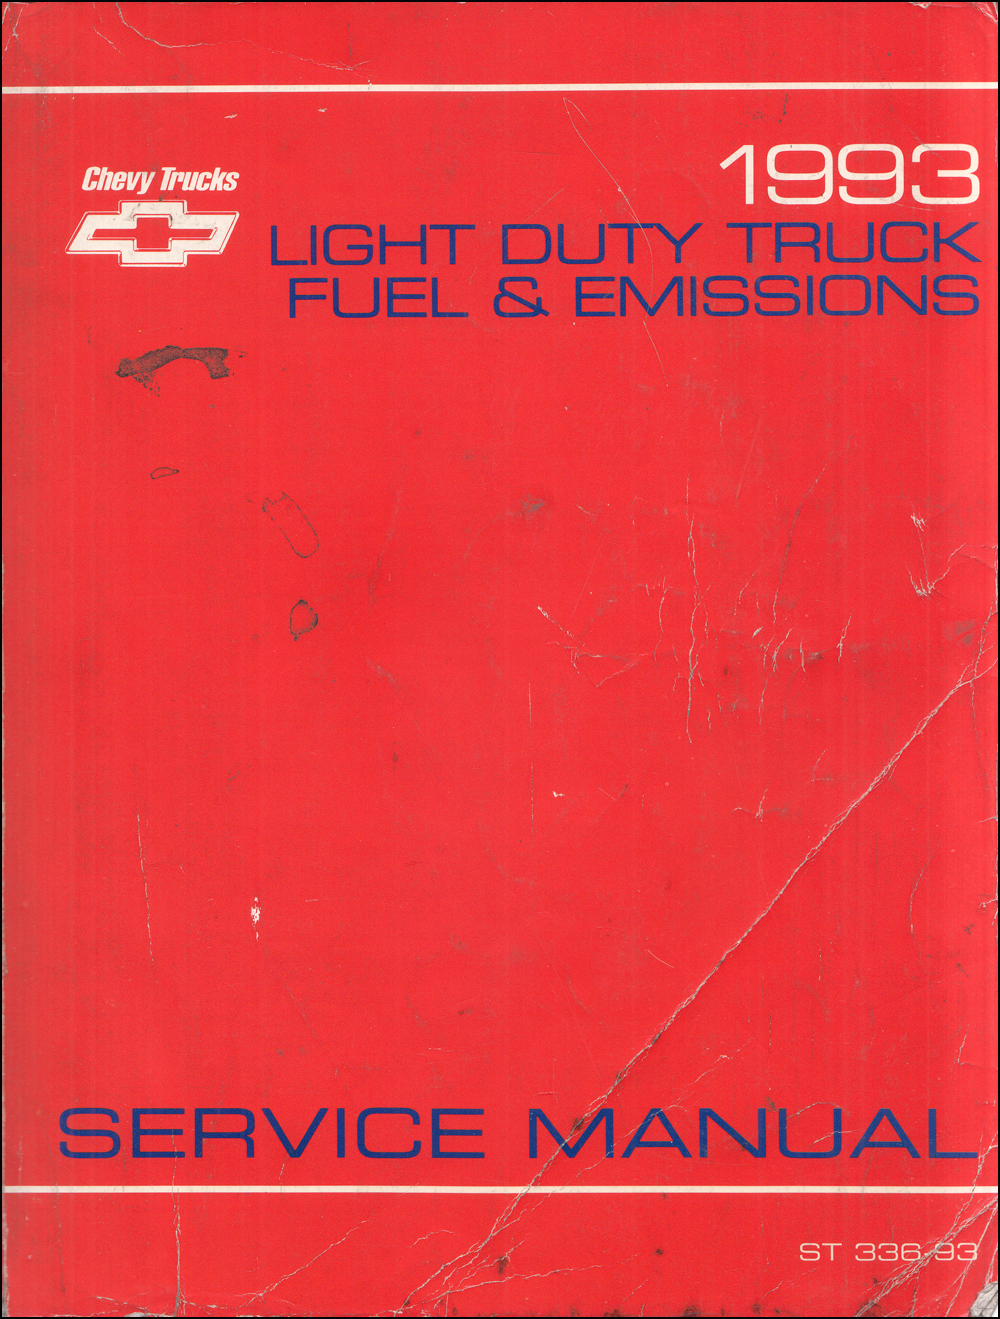 1993 Fuel & Emission Manual CK Pickup Blazer Suburban Astro S/T G P